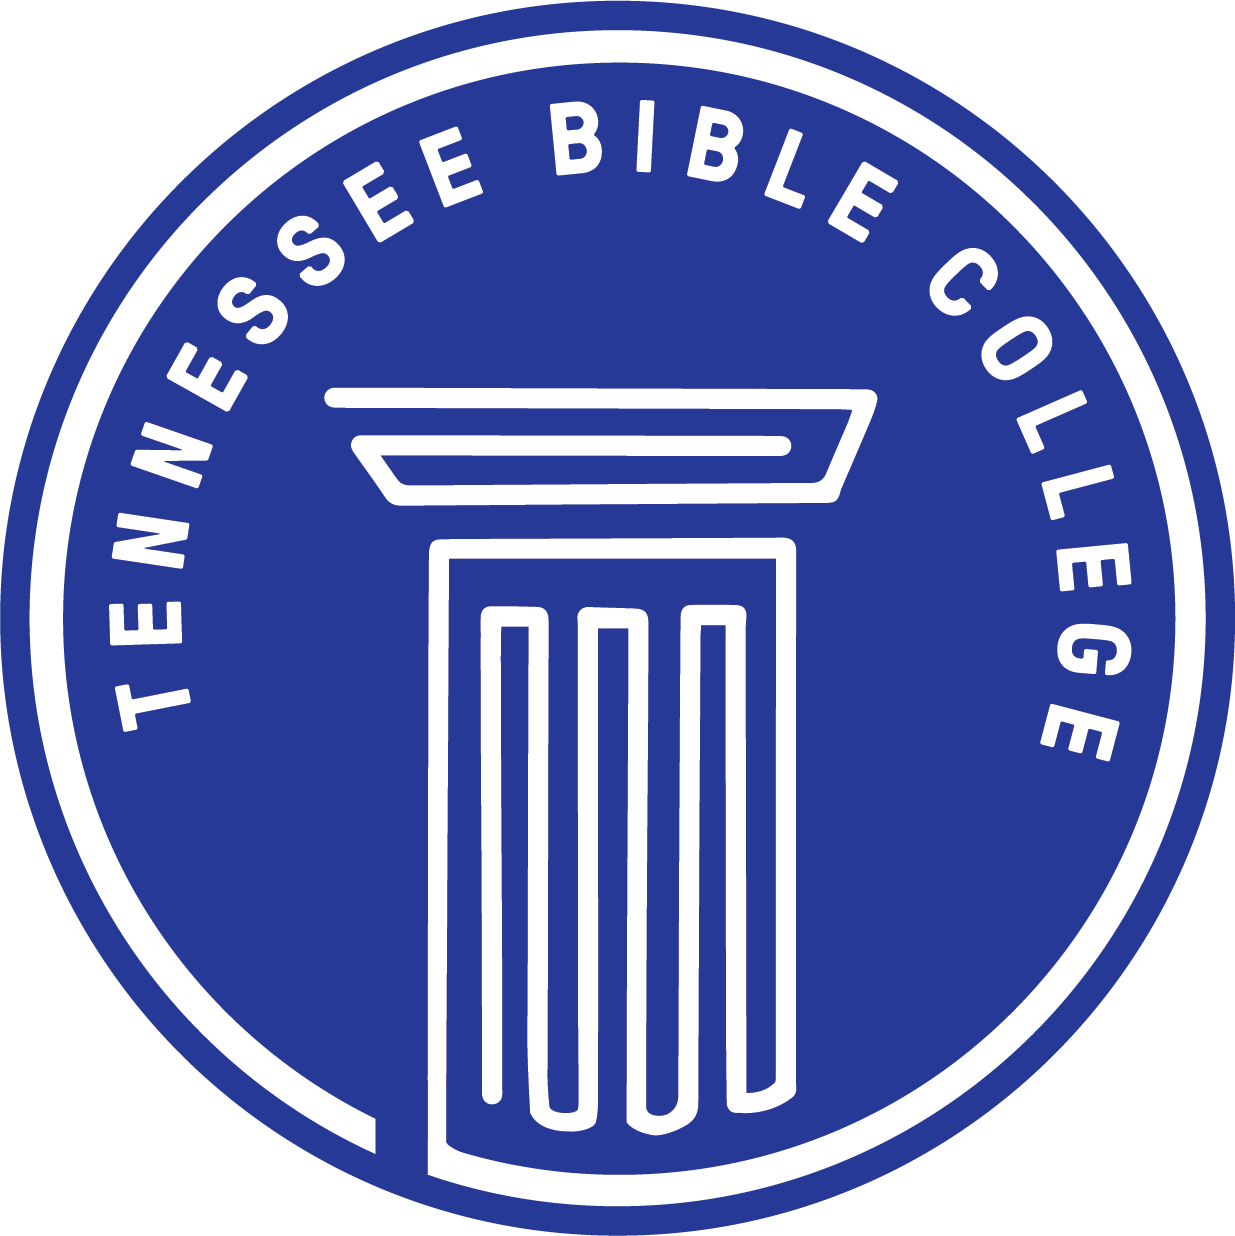 Tennessee Bible College | Christian Education on Campus and Online | Cookeville, Tennessee